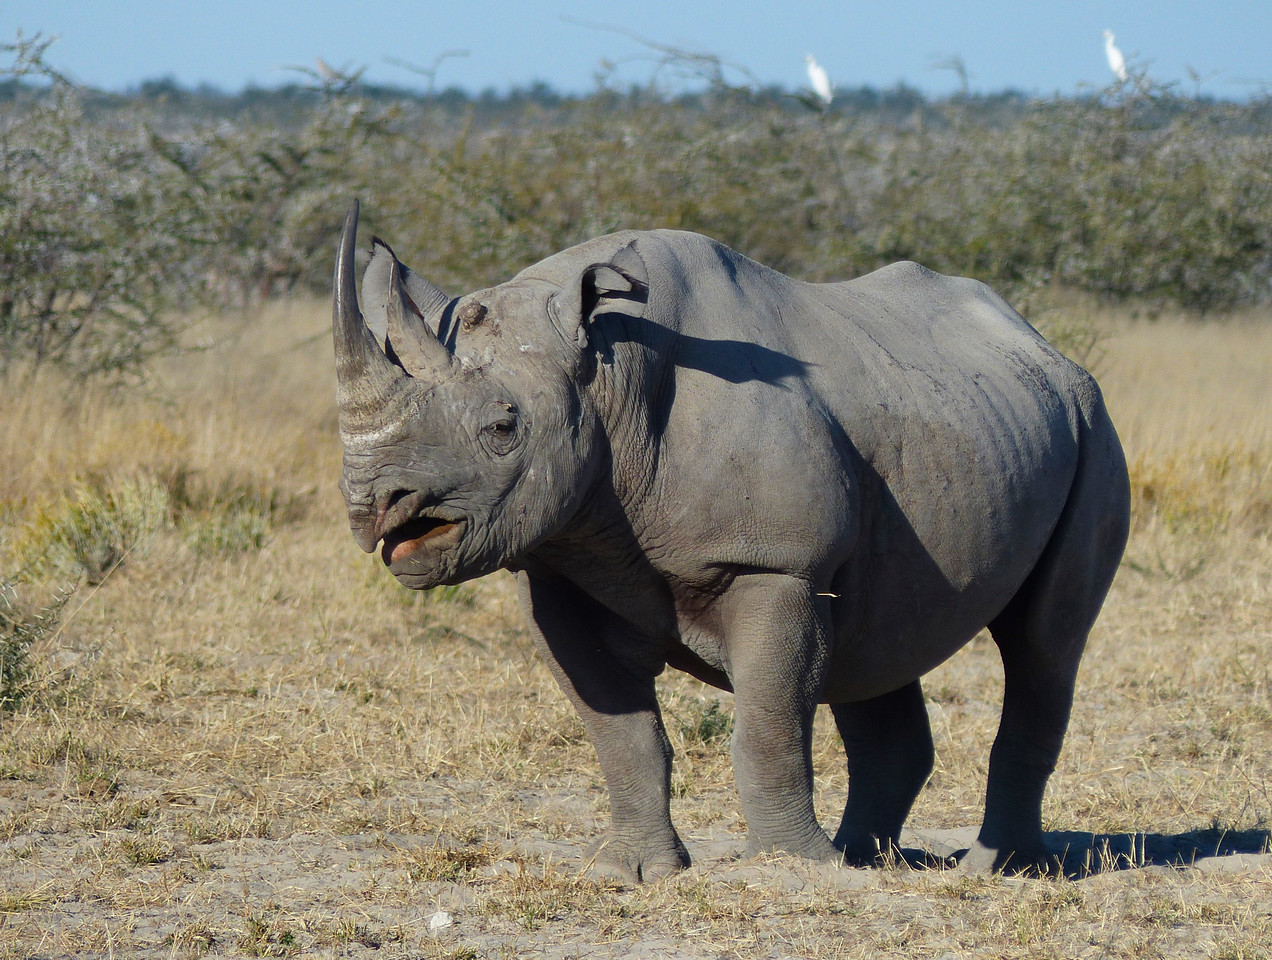 Black Rhino. He got up and walked around for us.